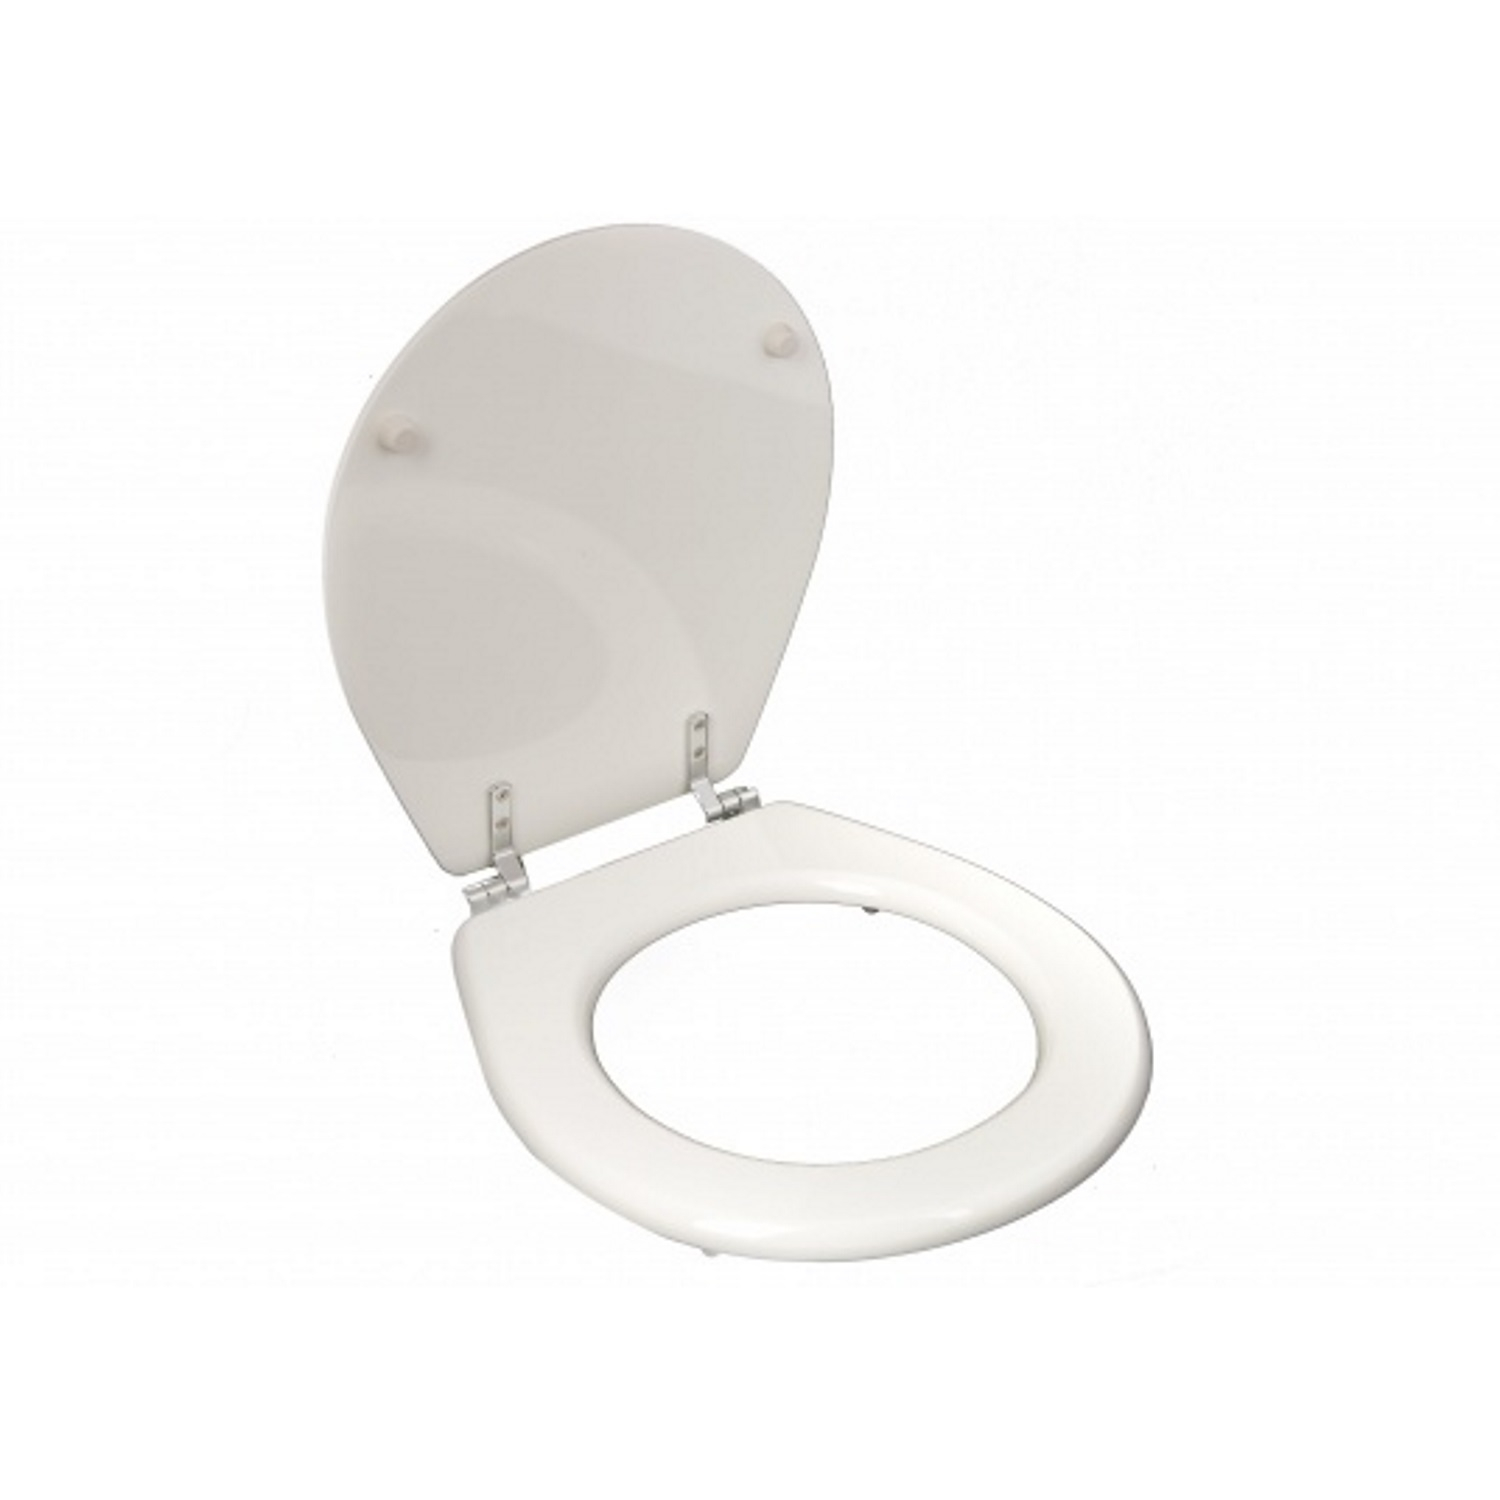 Toiletzitting Tiger Mini Softclose Hout Wit Toilet Softclose toiletbril